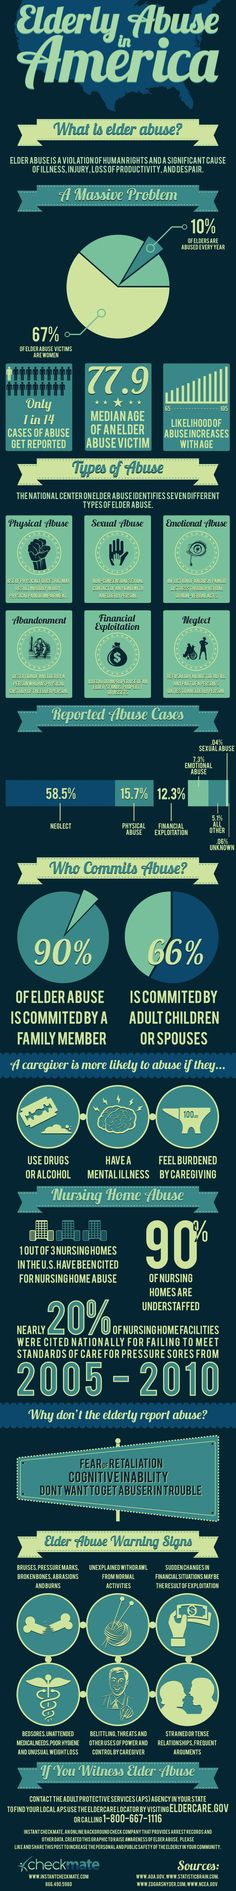 June 5th is World Elder Abuse Awareness Day. Instant Checkmate has created an infographic on elder abuse in America to help raise awareness of this crime. Help us stop elder abuse in America!  http://blog.instantcheckmate.com/elderly-abuse-in-america/